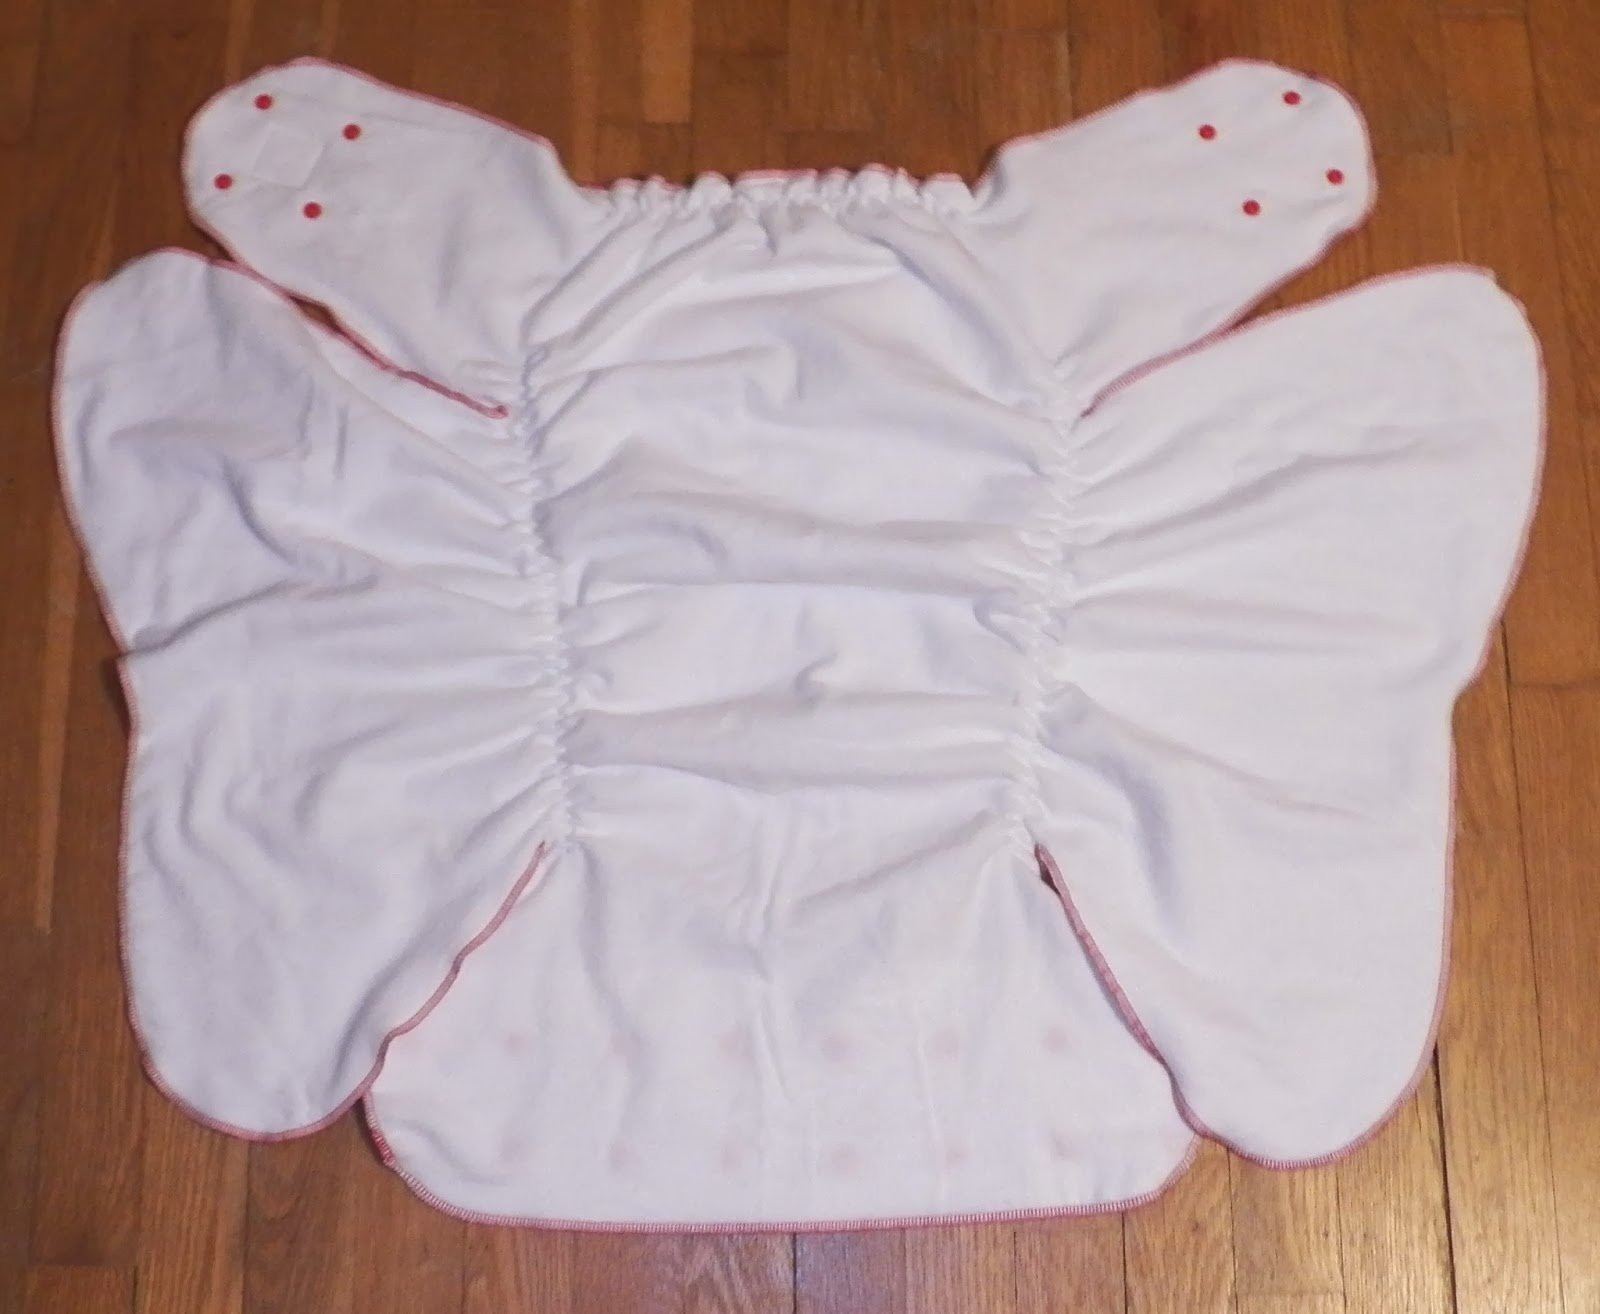 Clothe diapers for adults